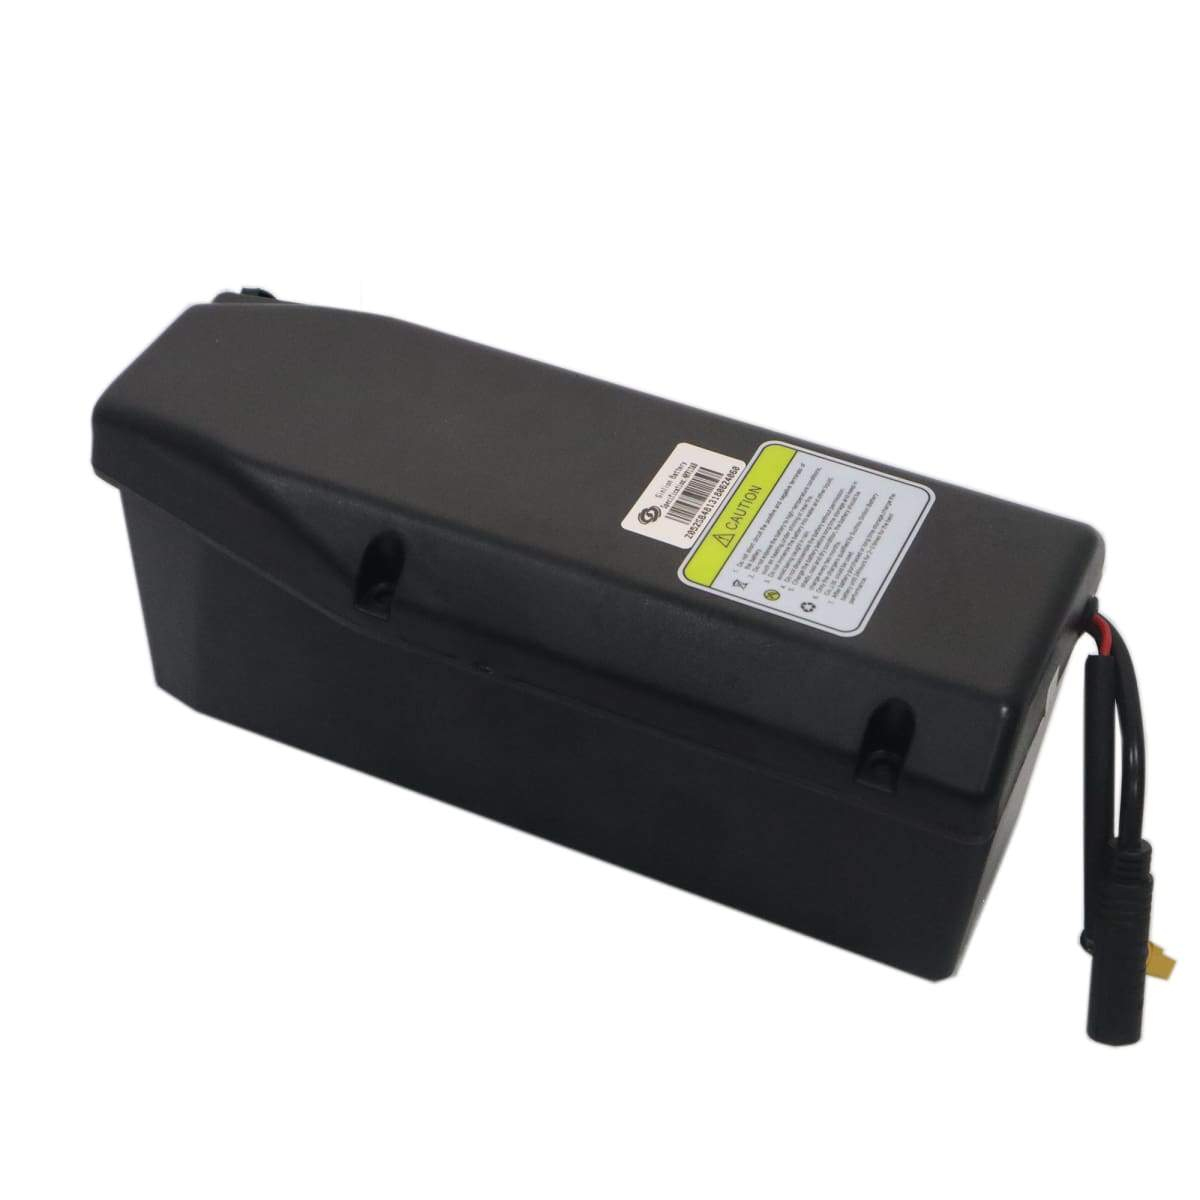 Civi Bikes Cheetah Bikes Lithium Battery - 48V 13Ah (624Wh) - 28 Miles - Bike Accessory $397.00